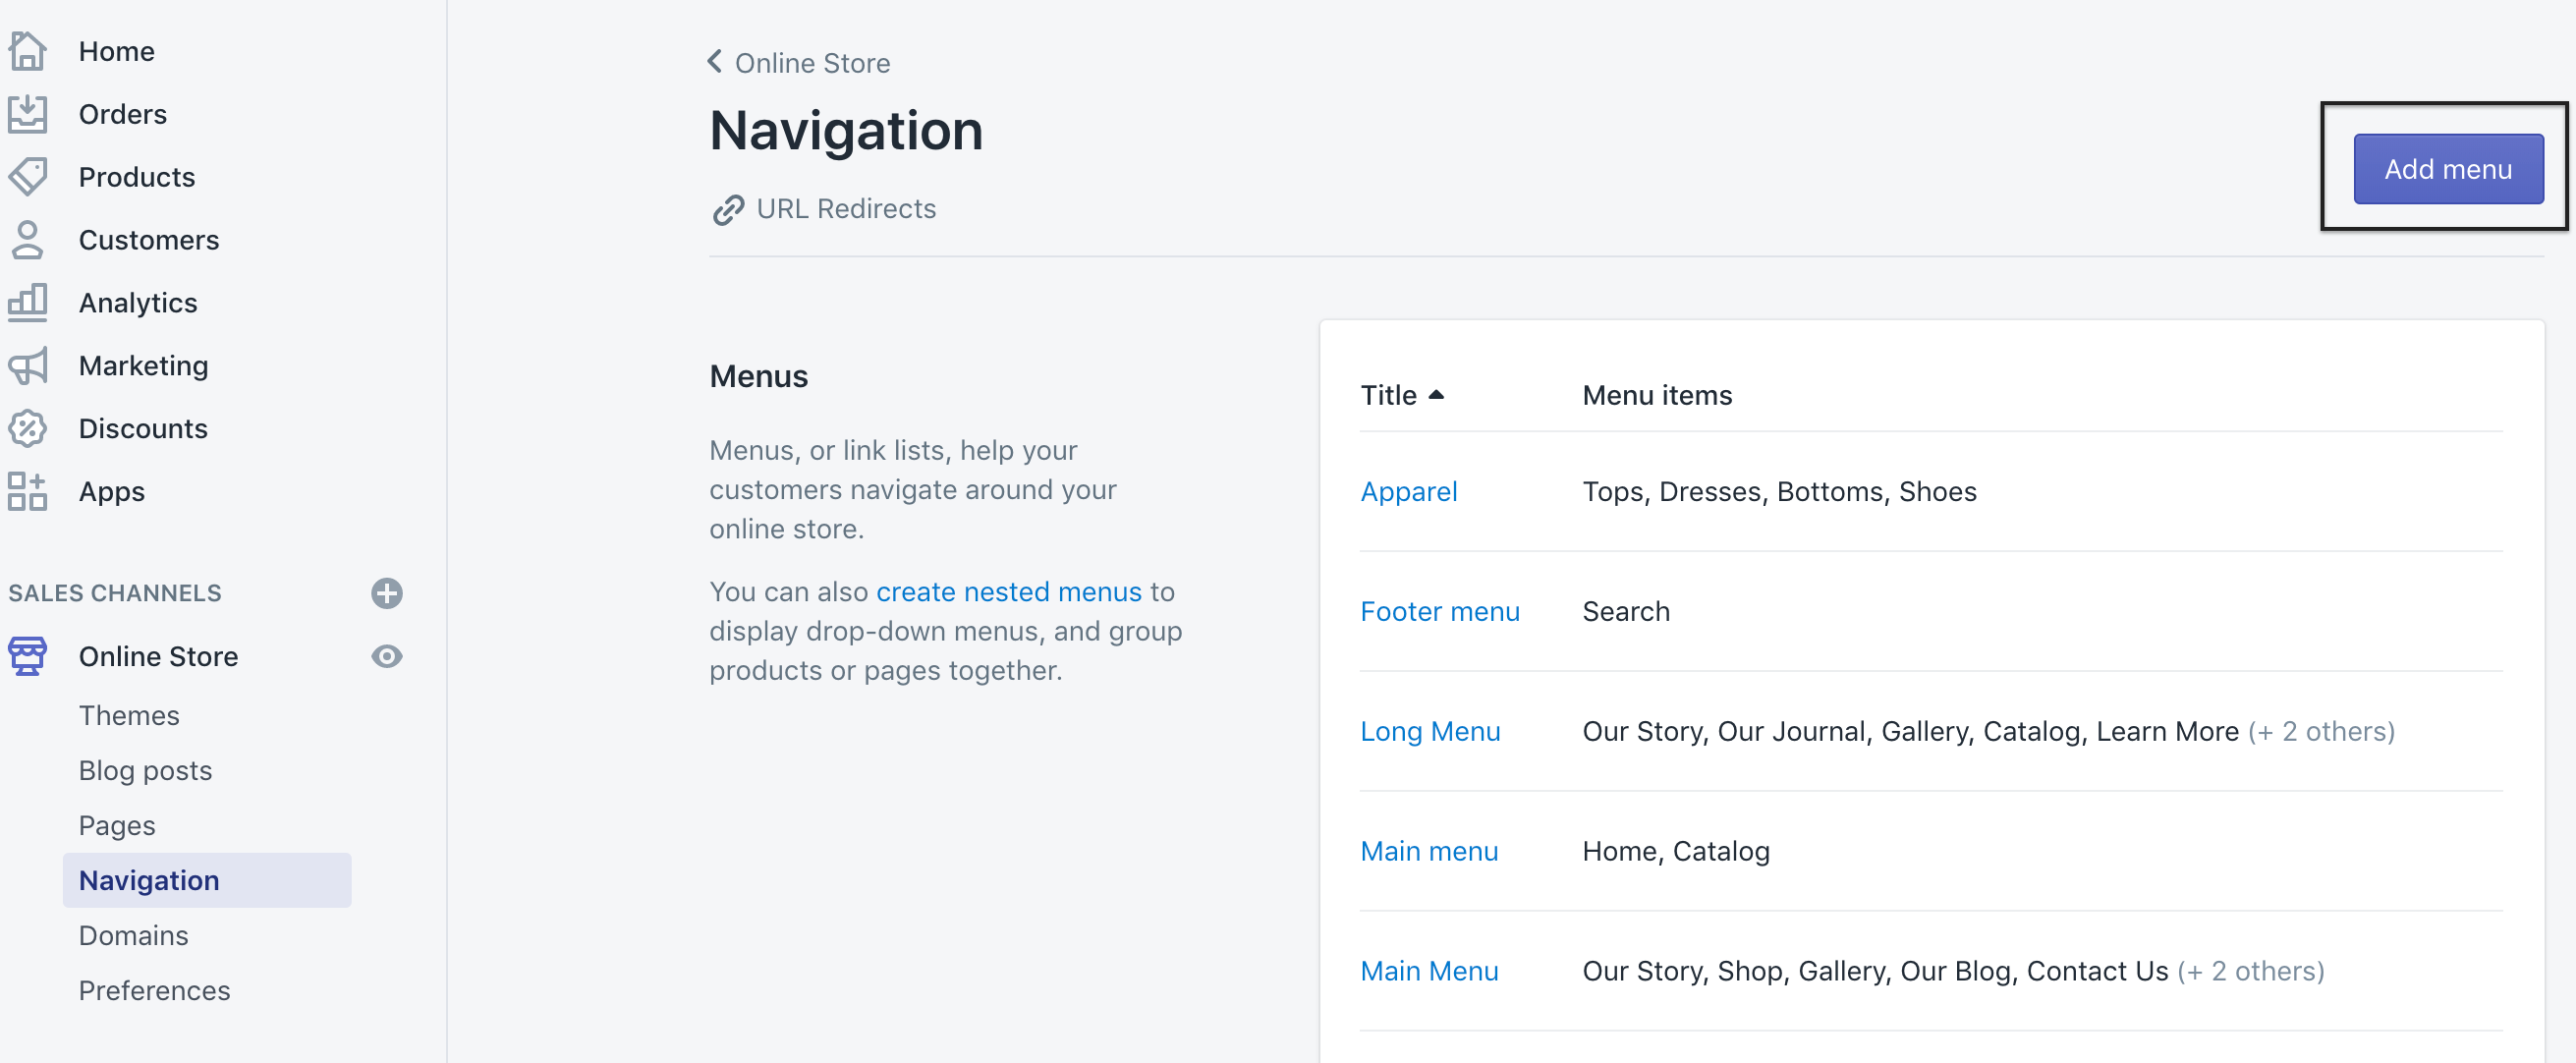 navigation-page-add-menu.png